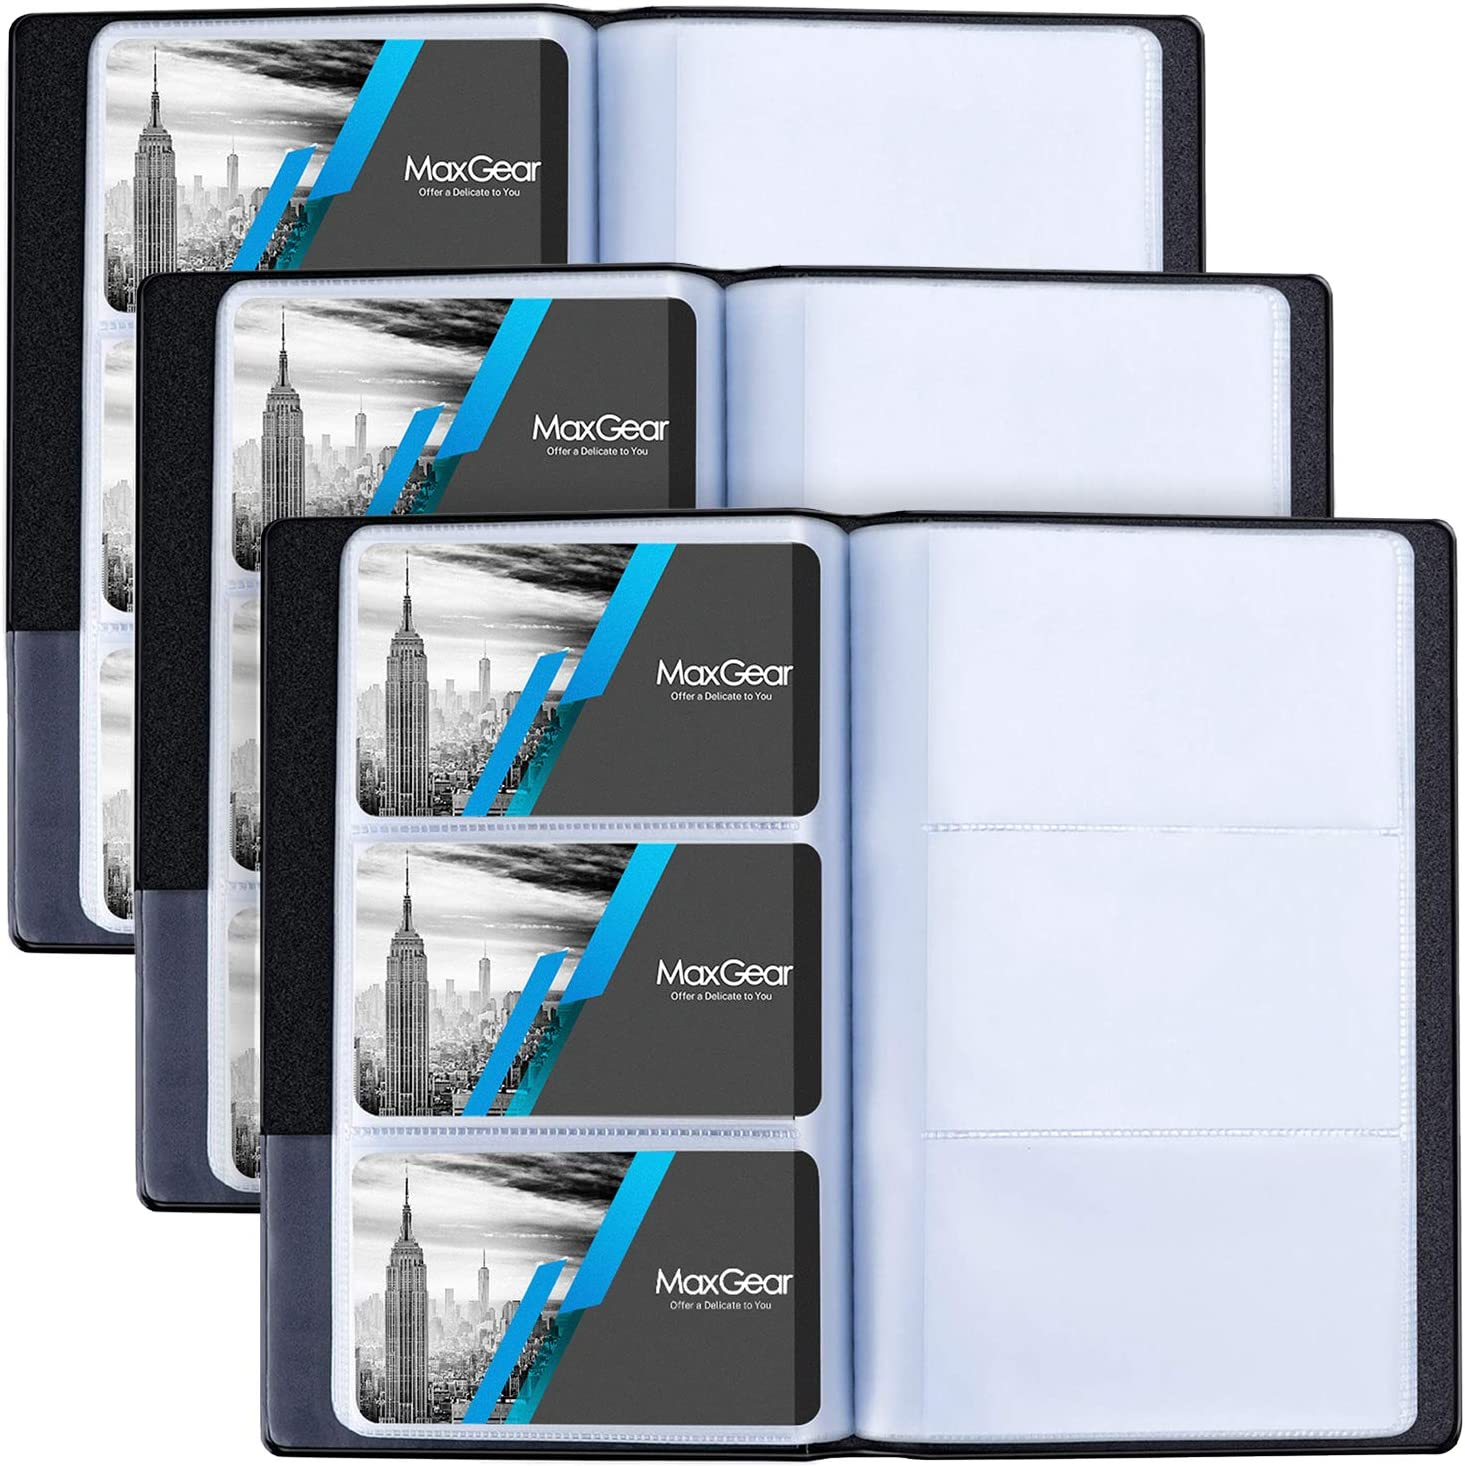 MaxGear 3 Pack Business Card Organizer Business Card Holder Book, Portable Business Card Binder File Sleeve Storage, Business Card ess Card File Name Card Holder for Office, Capacity: 240 Cards, Black